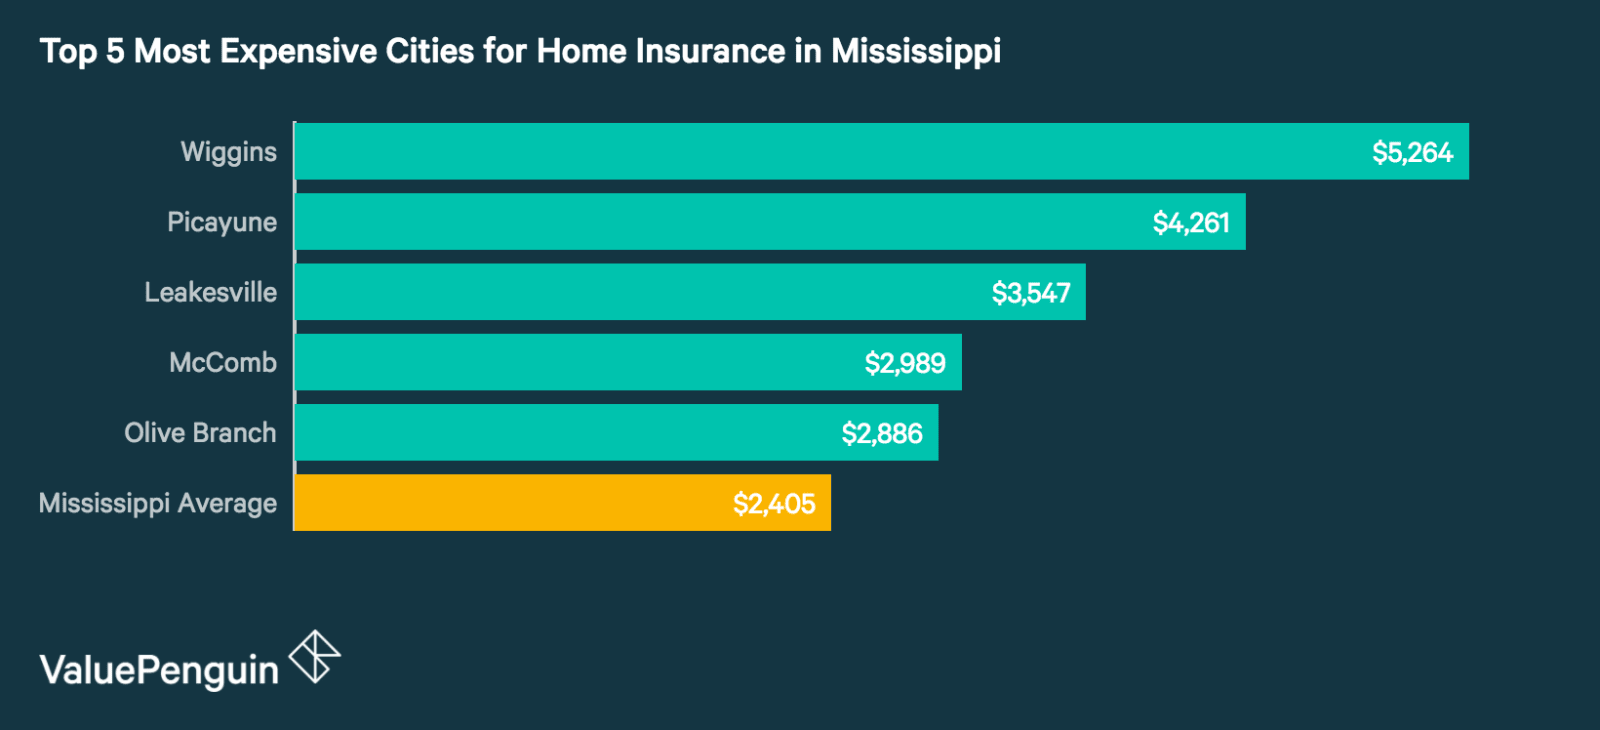 Top 5 Most Expensive Cities in Mississippi for Homeowners Insurance